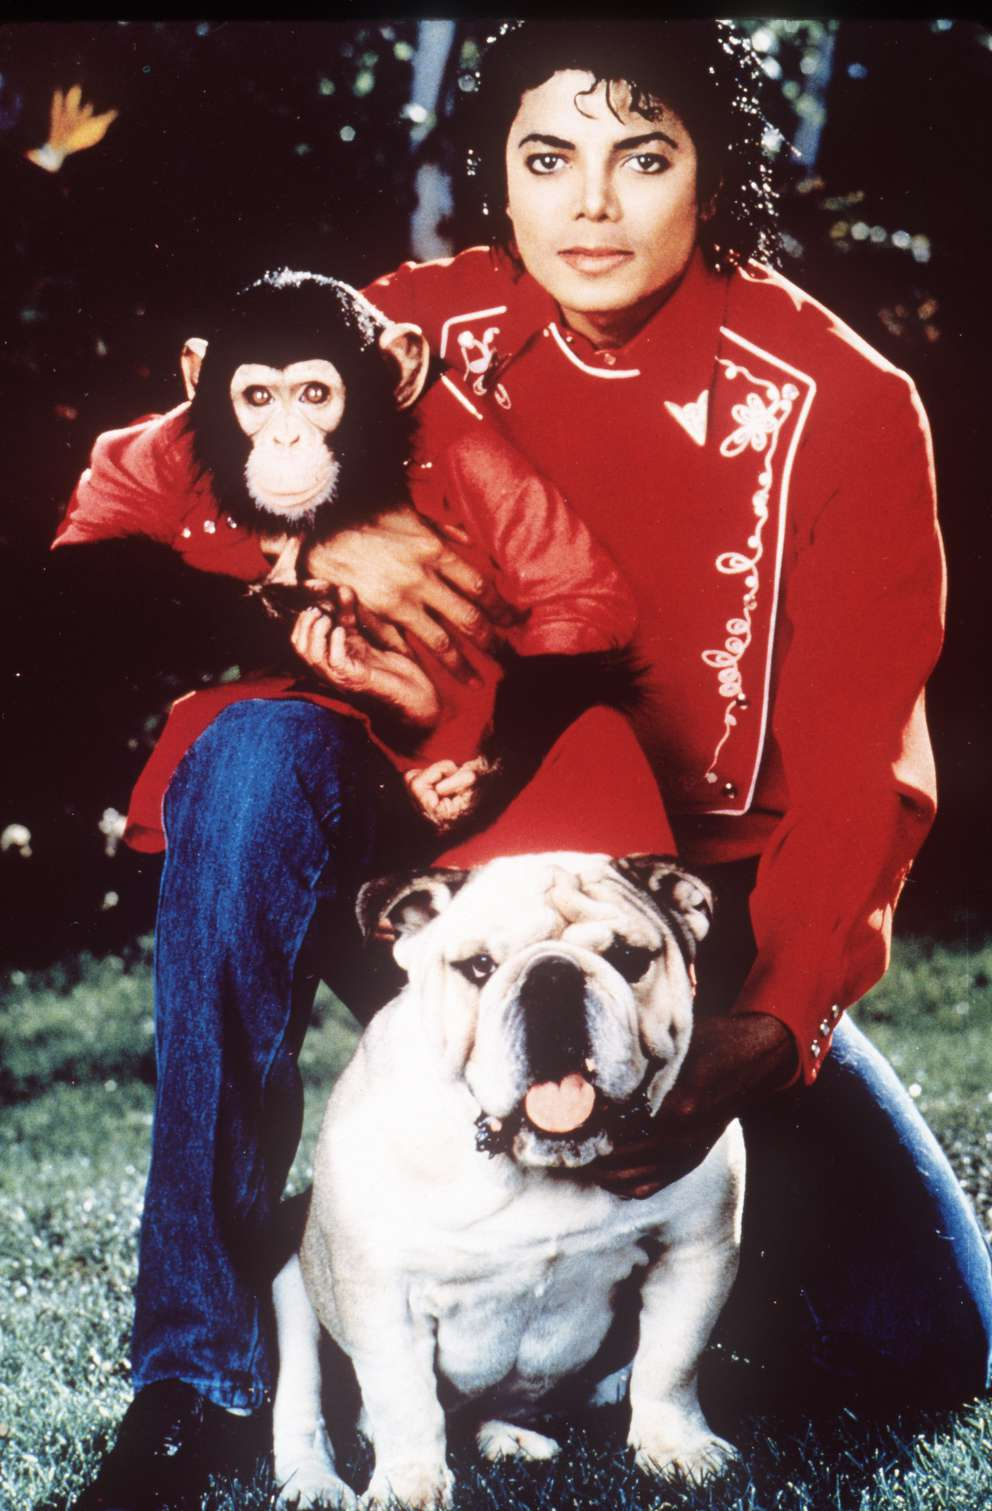 Michael Jackson is seen in this undated photo with his pet chimp Bubbles and a bulldog. [AP]